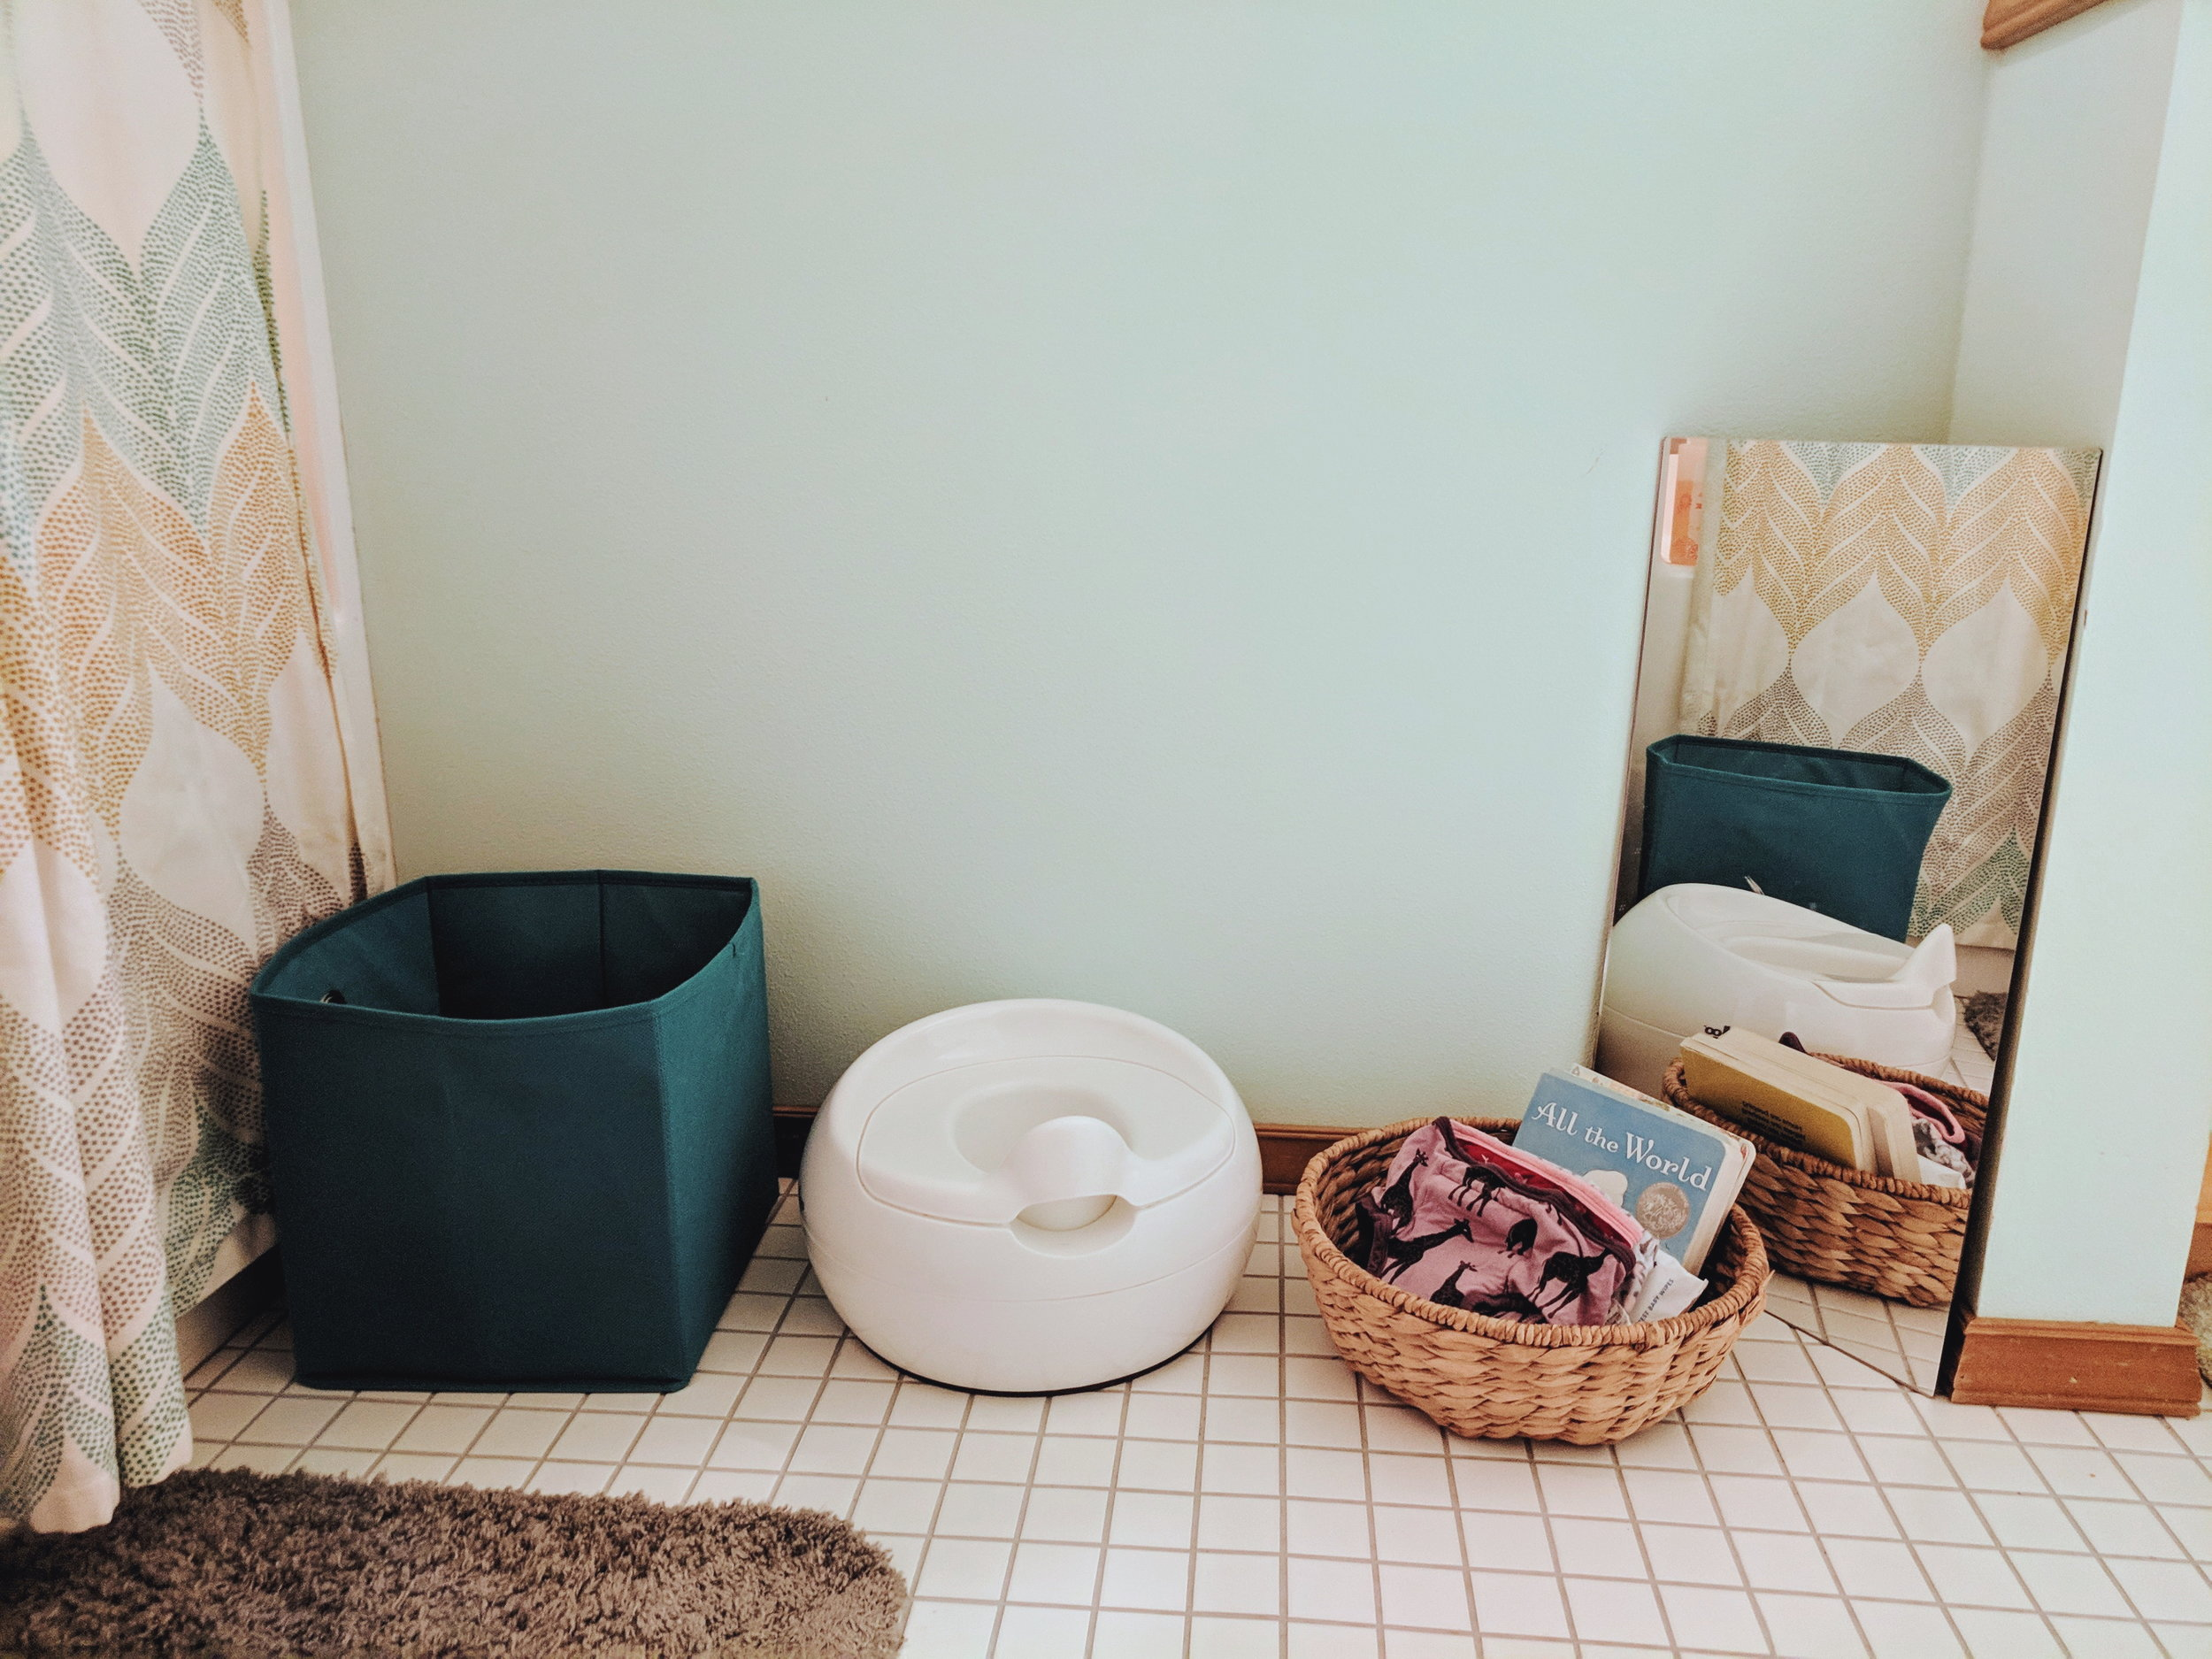 Toilet Learning - Montessori in Real Life